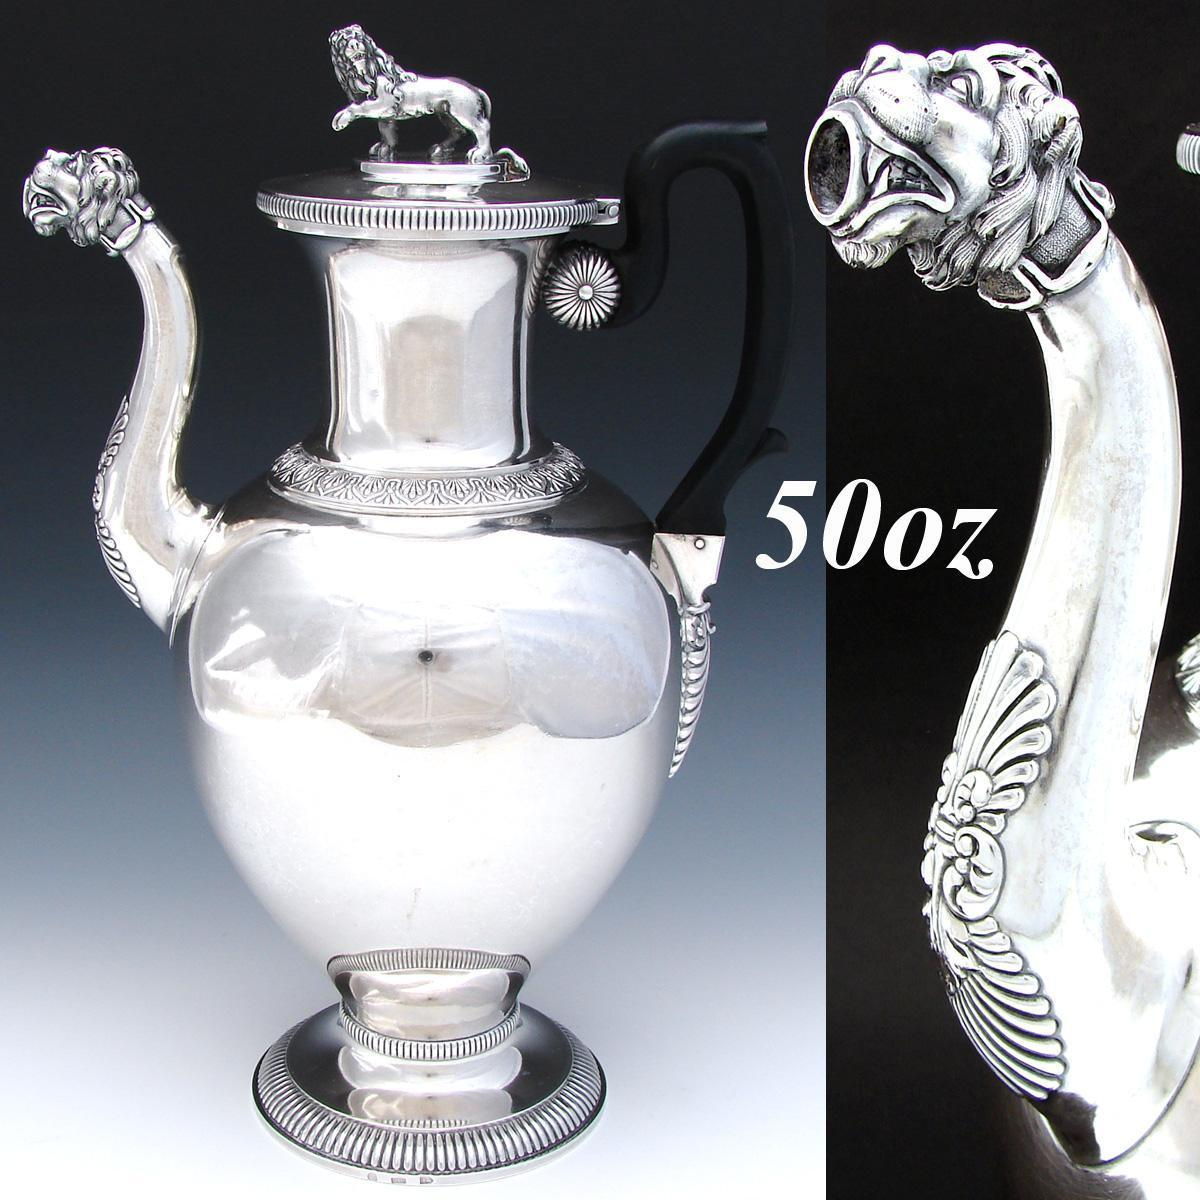 RARE Important Antique Swiss Sterling Silver 50 oz Coffee or Tea Pot, LION Figural Spout & Finial, Georg Adam Rehfuss, Bern c. 1830s